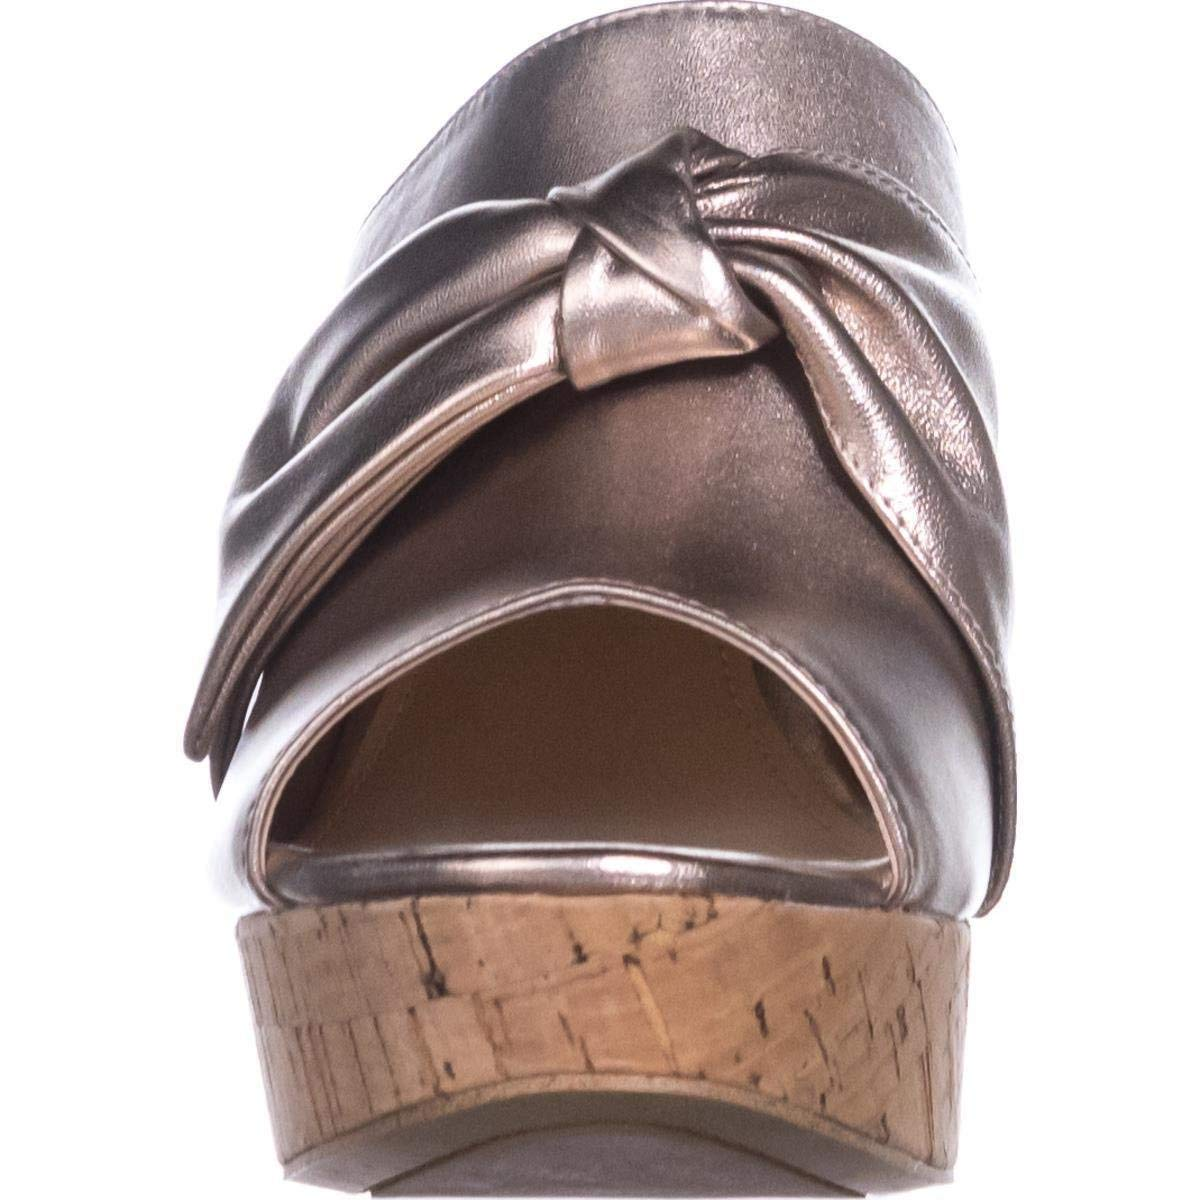 GUESS Womens Hotlove Leather Open Toe Casual Platform Sandals Gold Size 9.0 M US